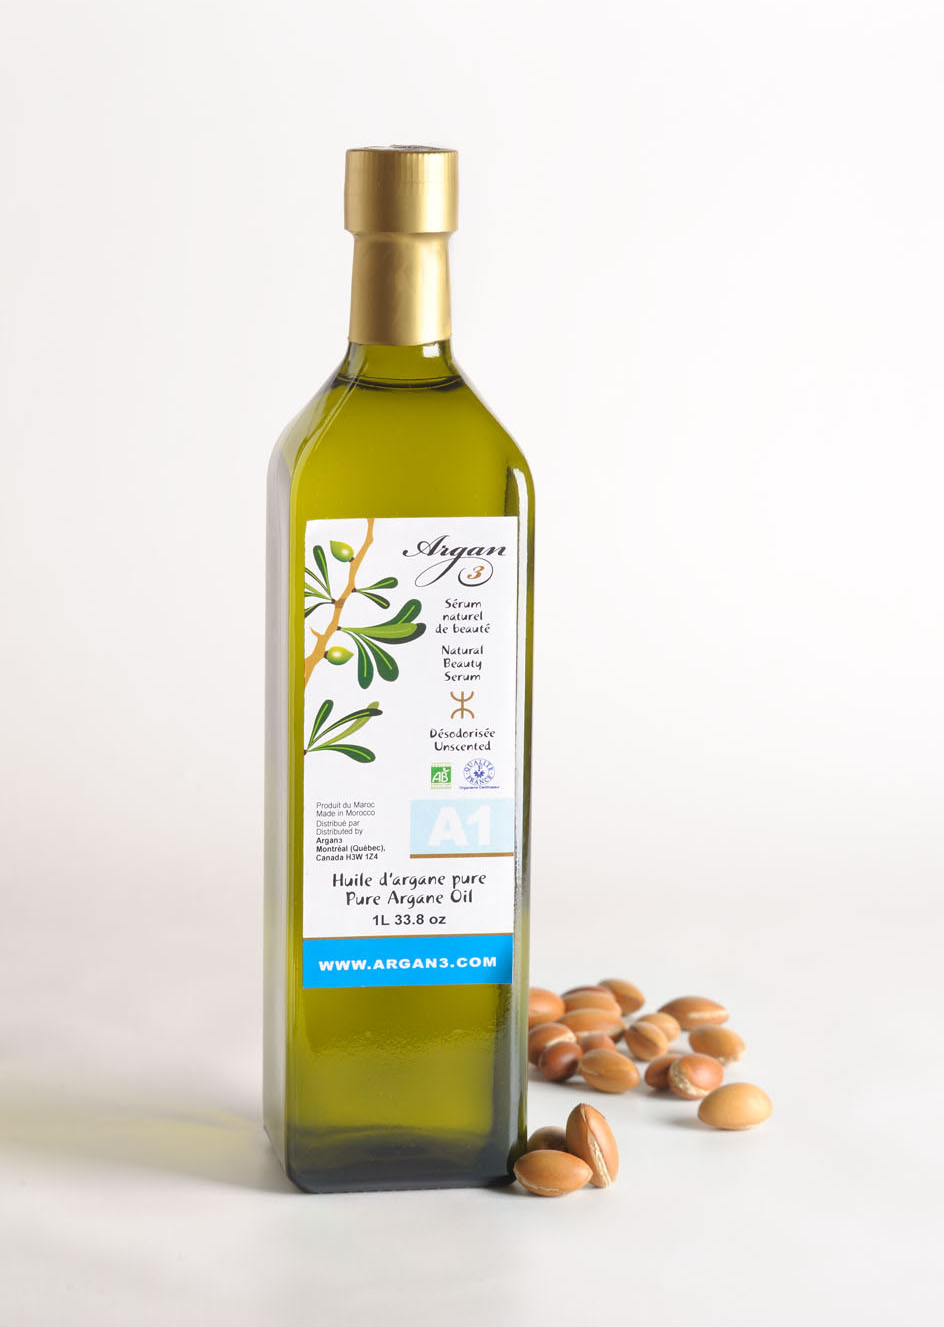 Argan Oil A1